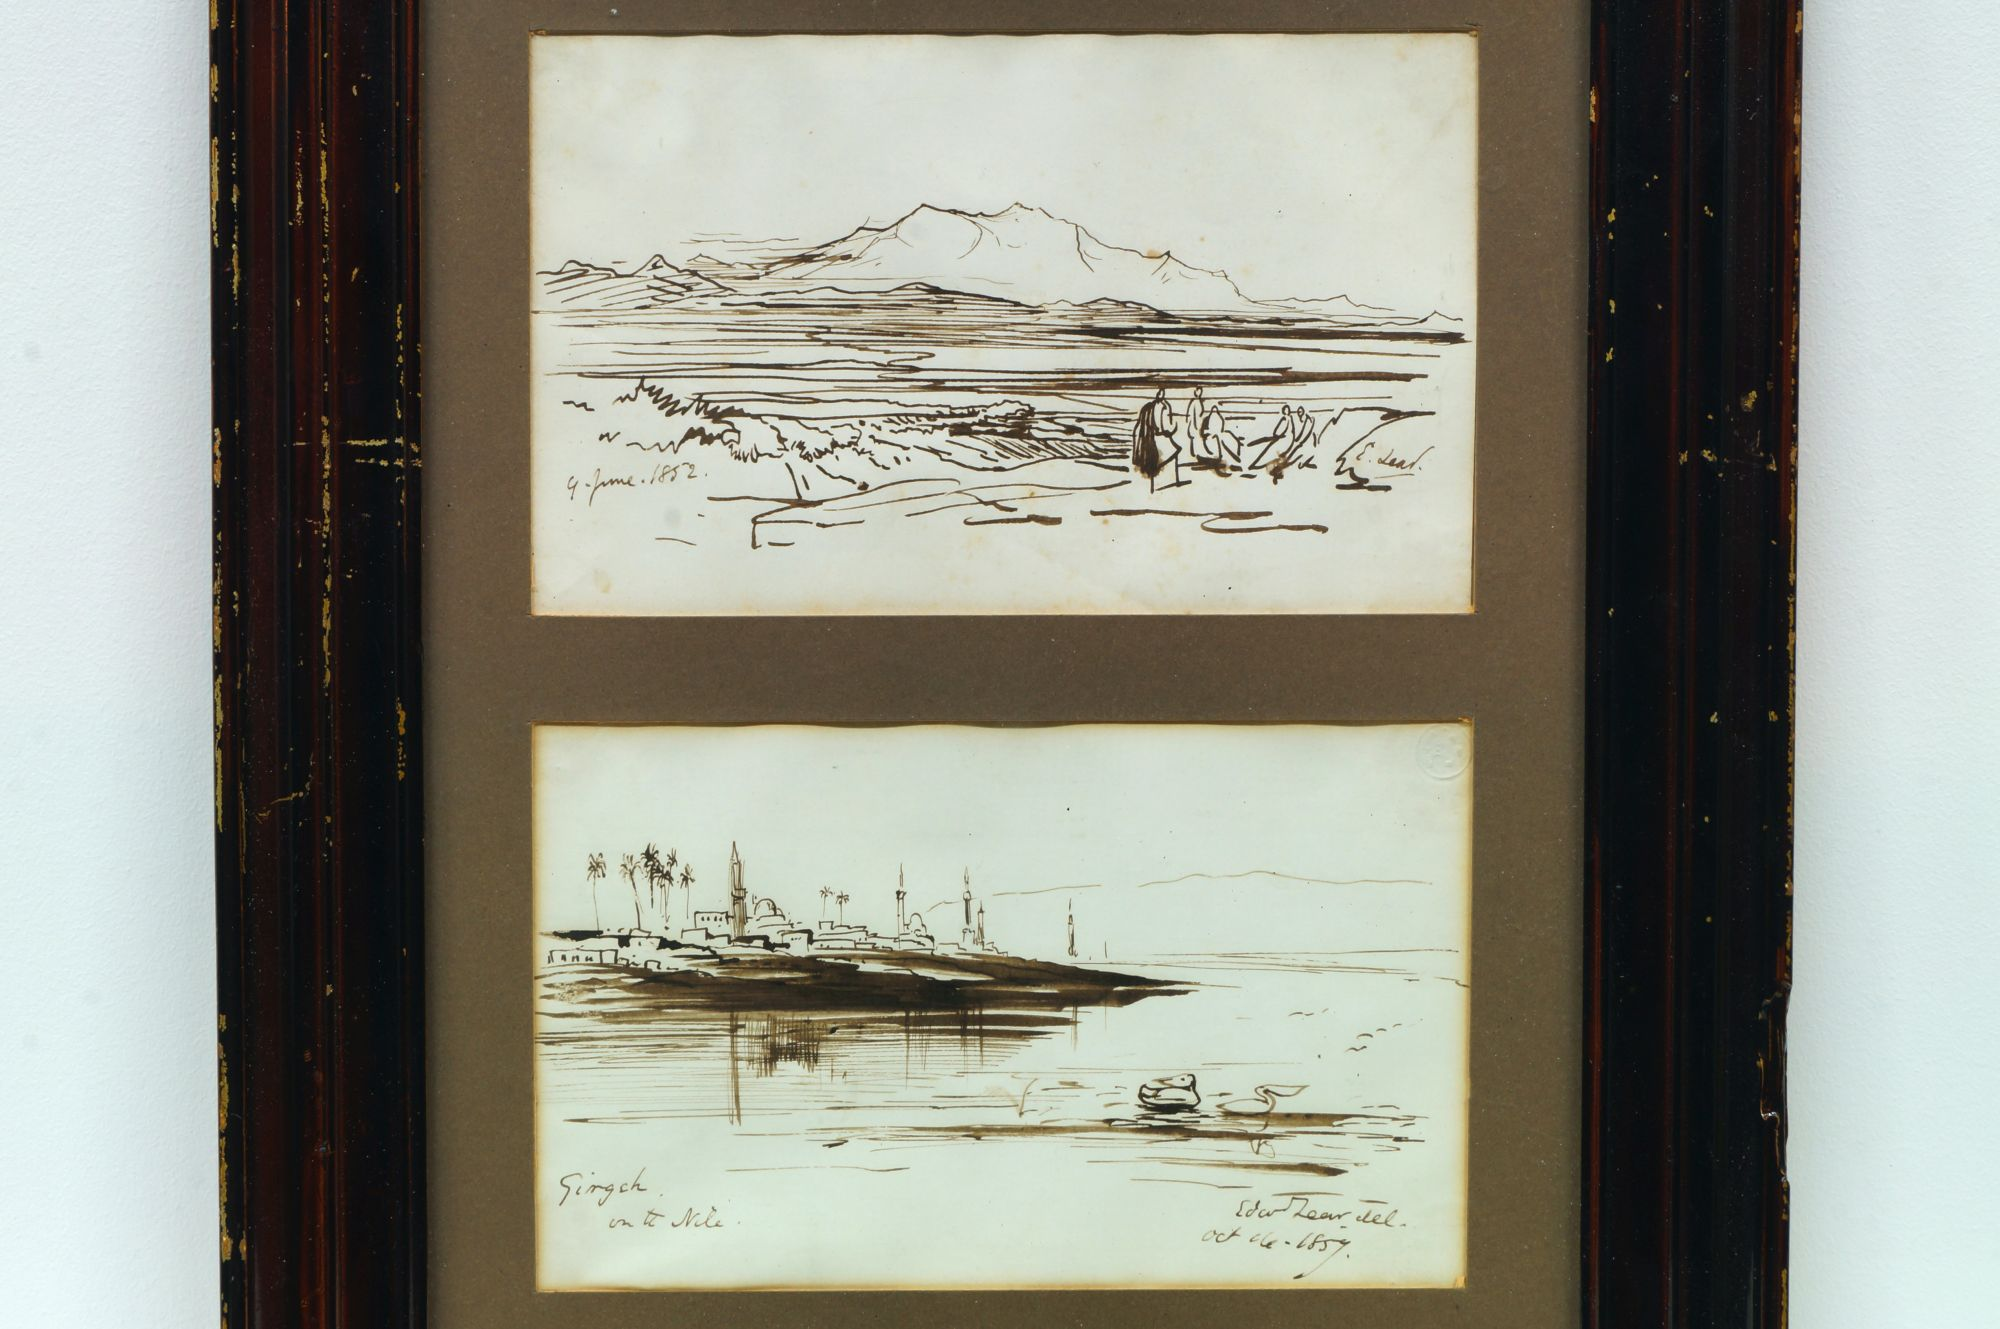 Edward Lear, British 1812-1888- Girgeh on the Nile & Figures in a mountain landscape; pen, brown ink